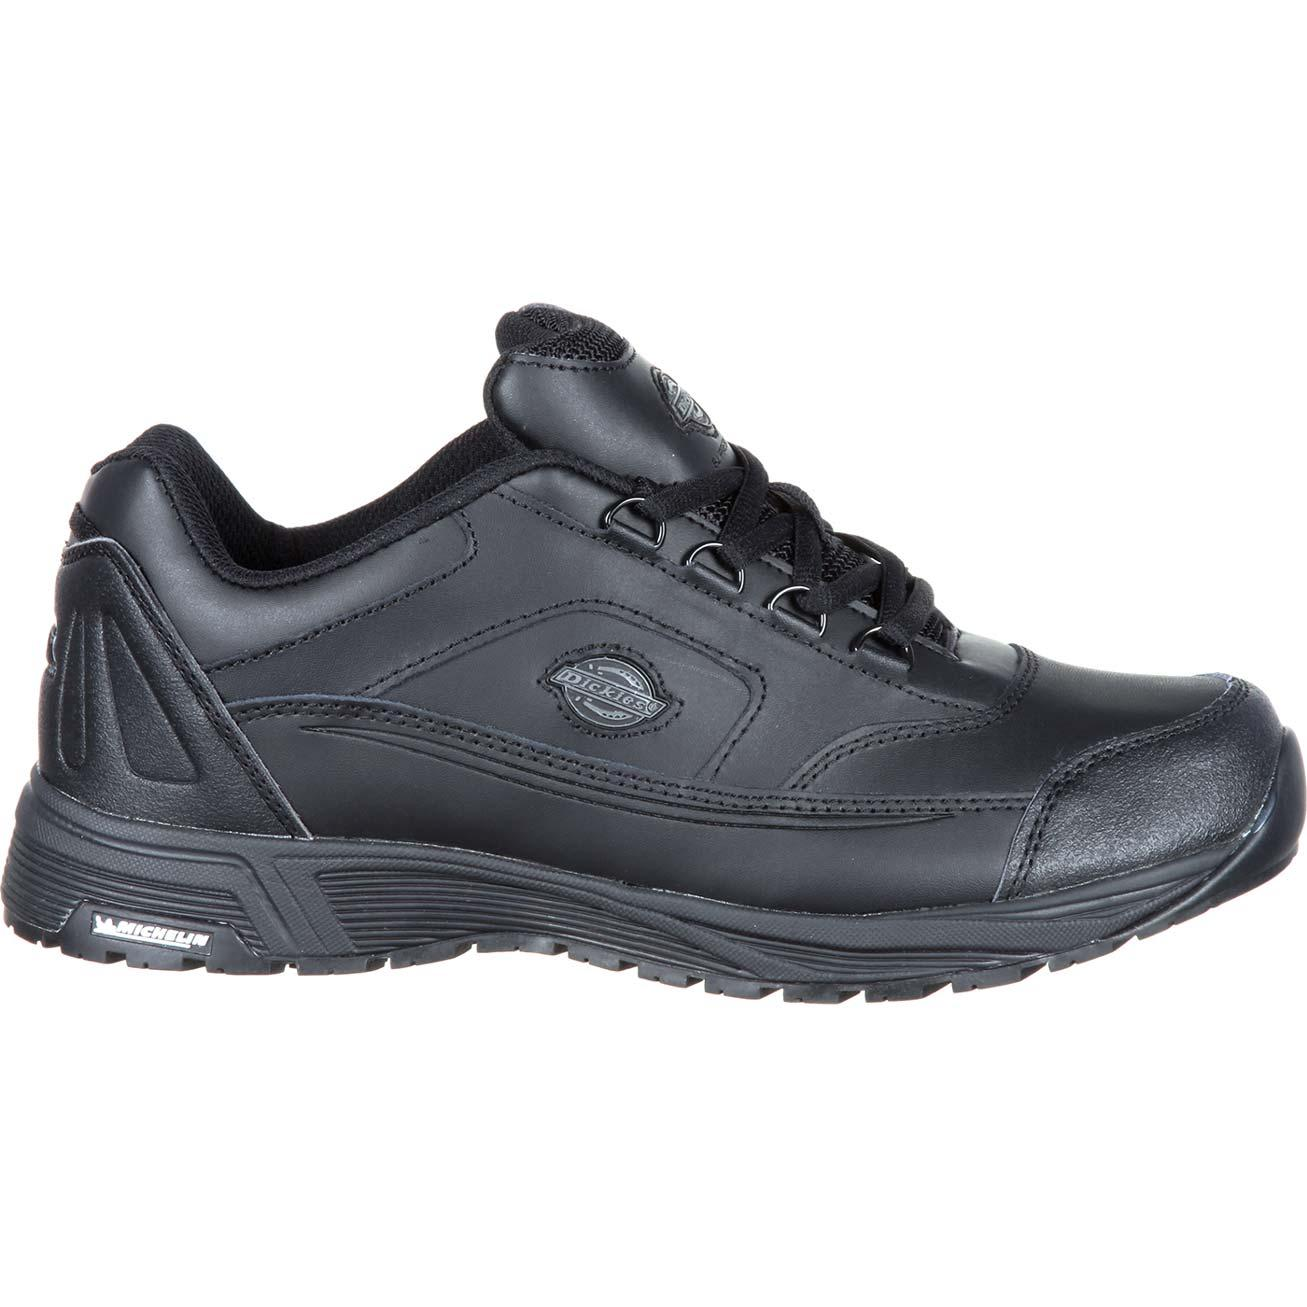 09953a0ea16c6e Dickies Charge Slip-Resistant Work Shoe